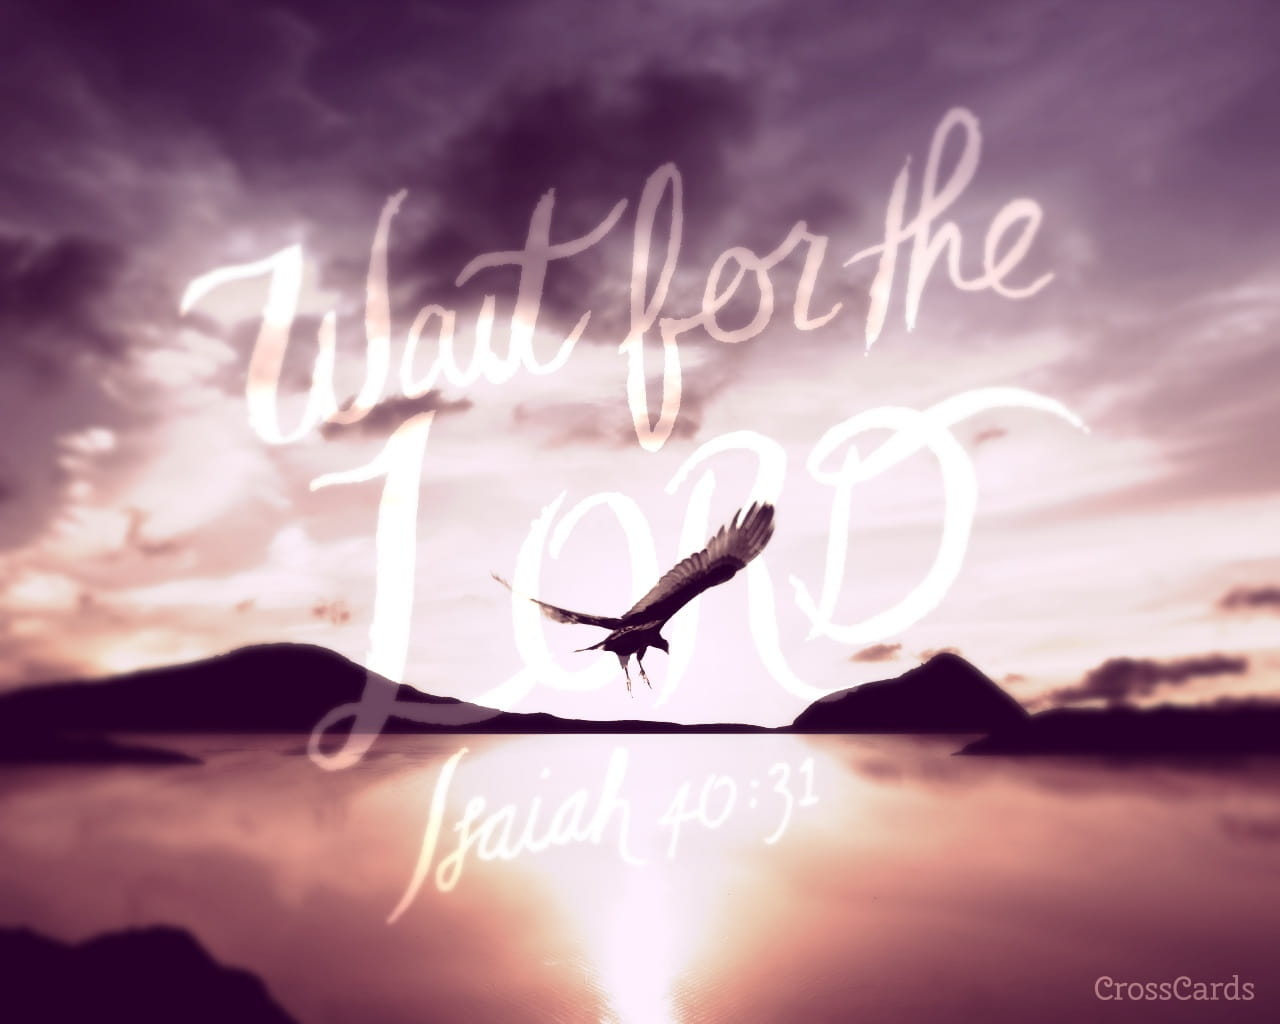 Free Desktop Wallpaper Scripture Fall Inspiring Wait For The Lord Isaiah 40 32 Bible Verses And